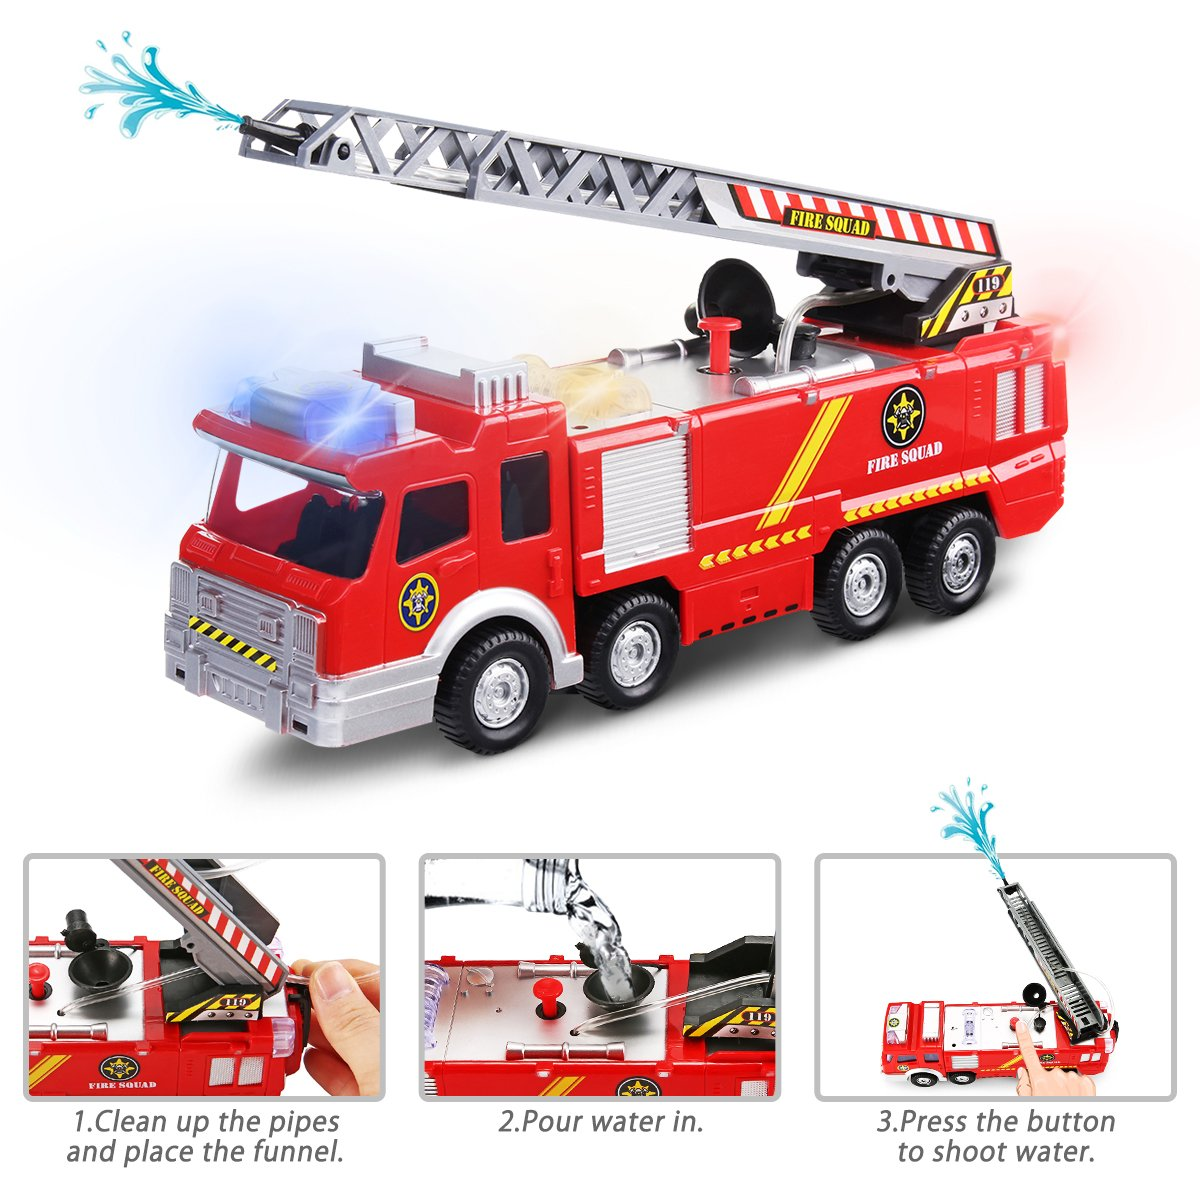 Learned Electric Fire Truck Toy Water Spray Fire Engine Car Toy With Bright Lights Kids Early Educational Vehicle Toys For Children Gift Toys & Hobbies